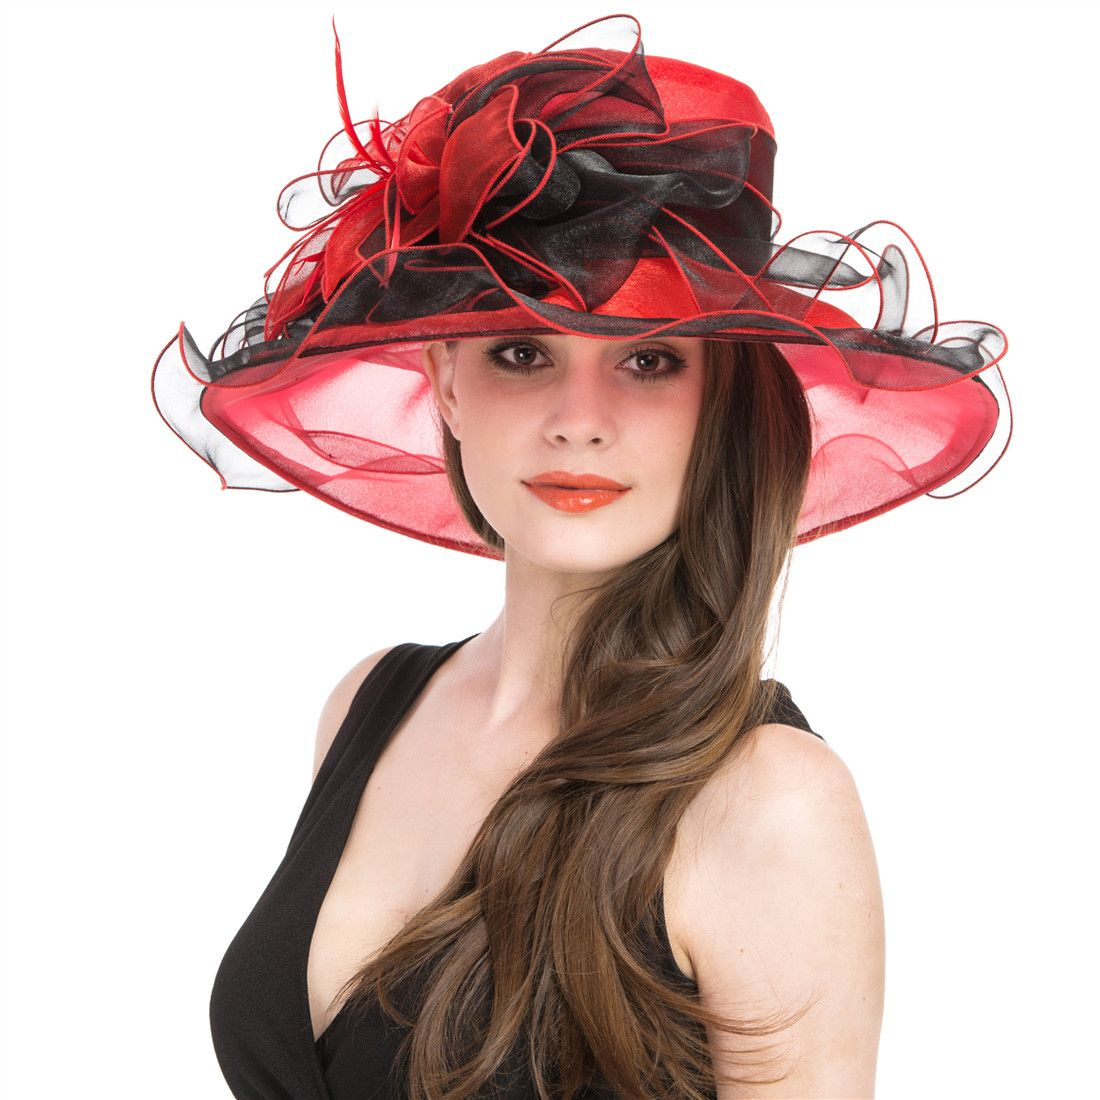 1be5614697e3 Saferin Women's Organza Church Derby Fascinator Bridal Cap British Tea  Party Wedding Hat Black and red Two Tone color